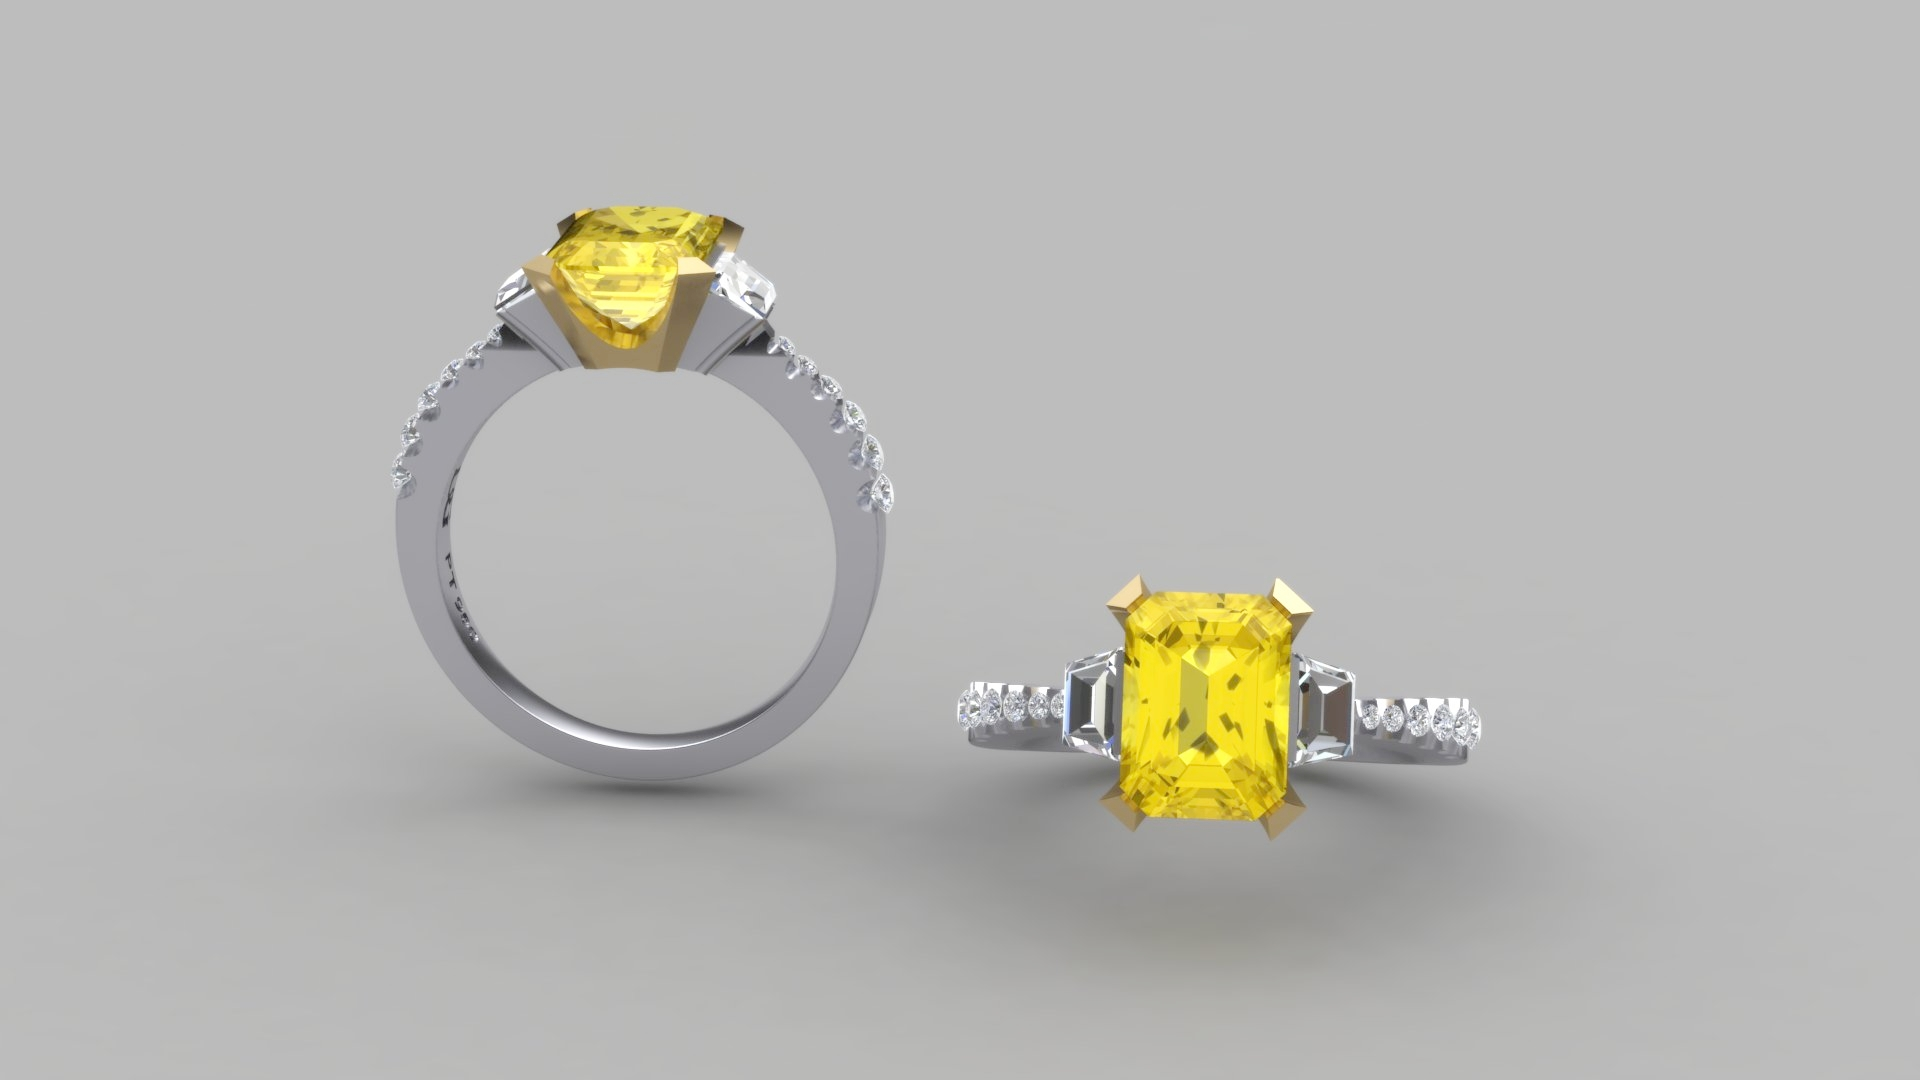 CAD render of the ring above